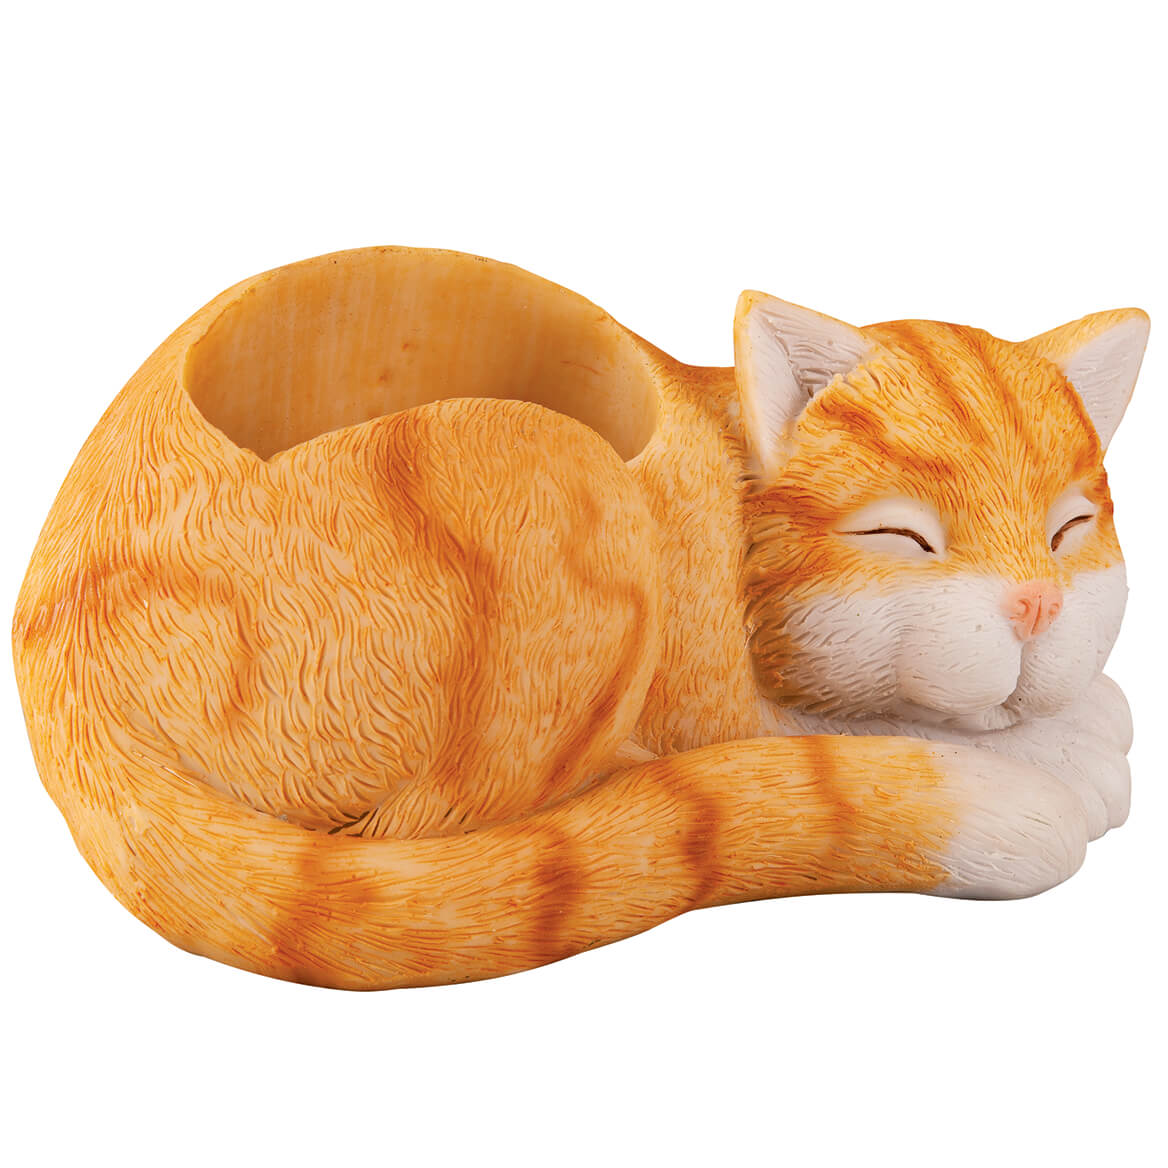 Sleeping Cat Desk Organizer-371440